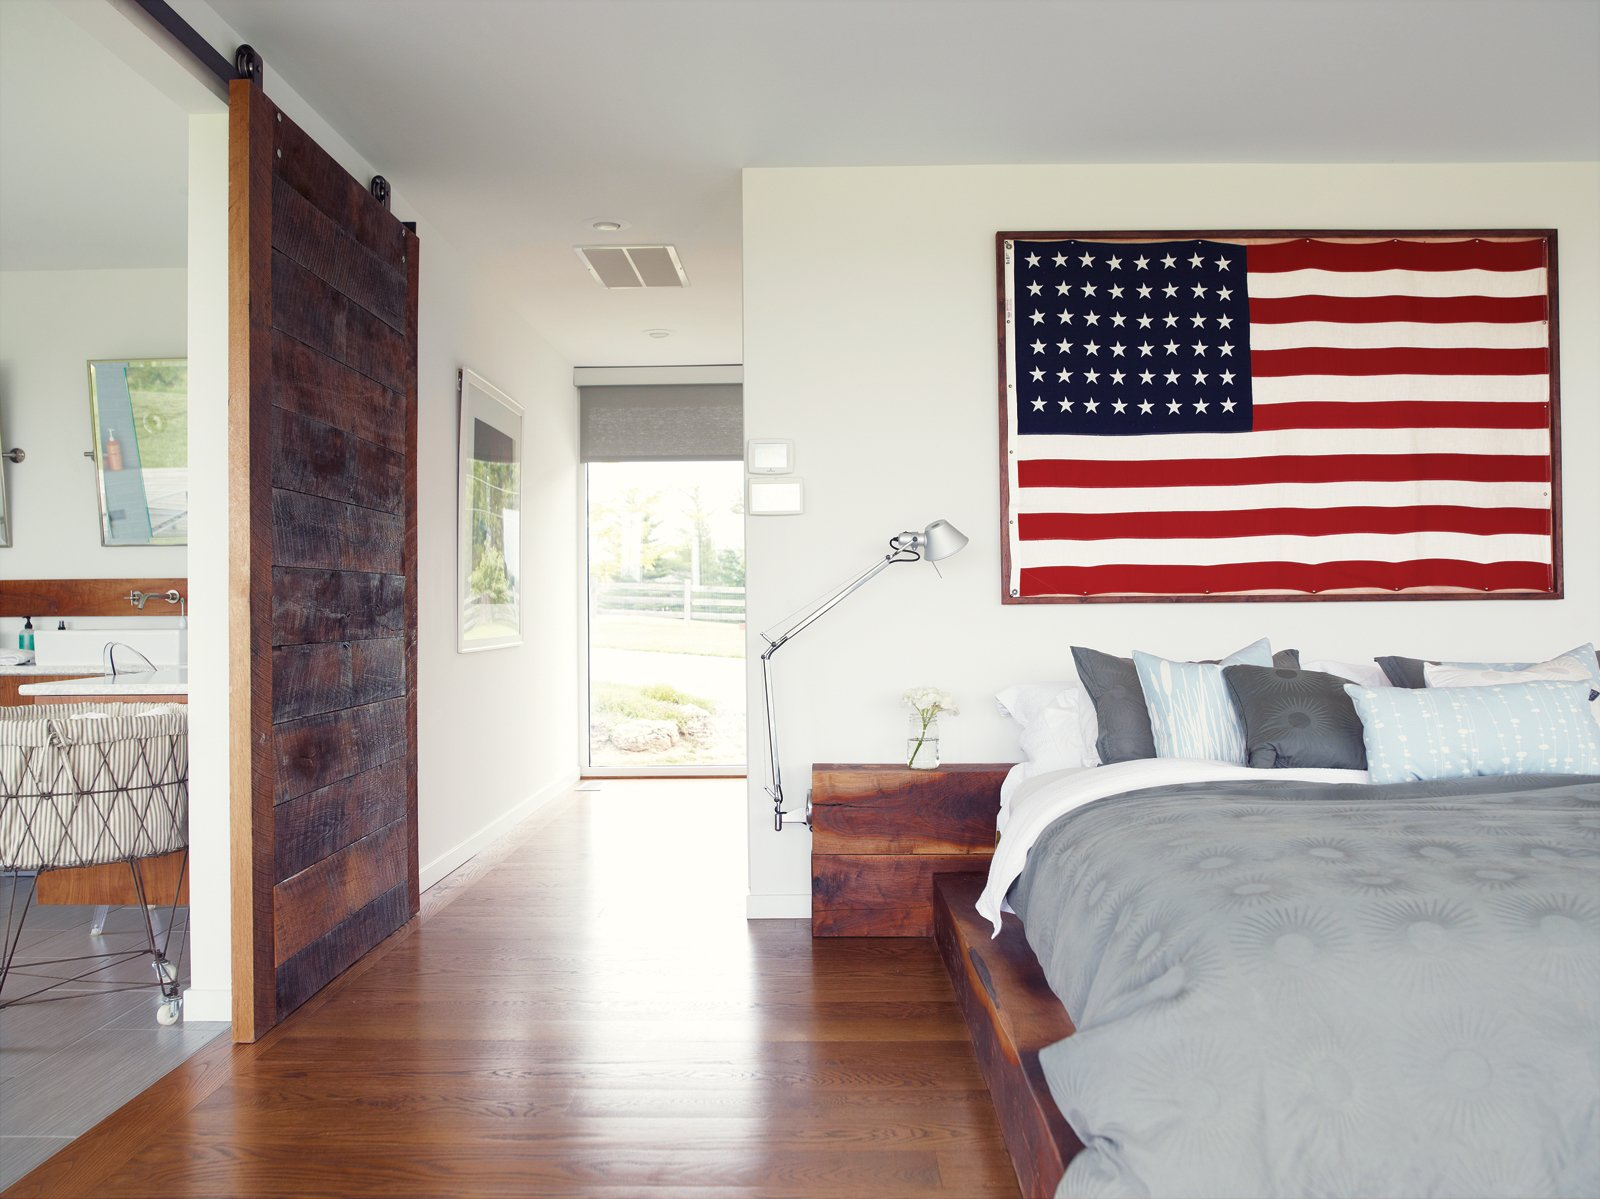 Bedroom, Medium Hardwood Floor, and Bed He built the walnut bed and nightstands in the master bedroom with the help of Hannah's two brothers. One of his clients at his hair salon gave him the American flag; the bedside lights are Tolomeo classic wall lamps by Artemide. The bed linens are   from Inhabit. A sliding barn door rolls sideways to reveal the bathroom.  Week in Review: 7 Great Reads You May Have Missed June 1, 2013 by Megan Hamaker